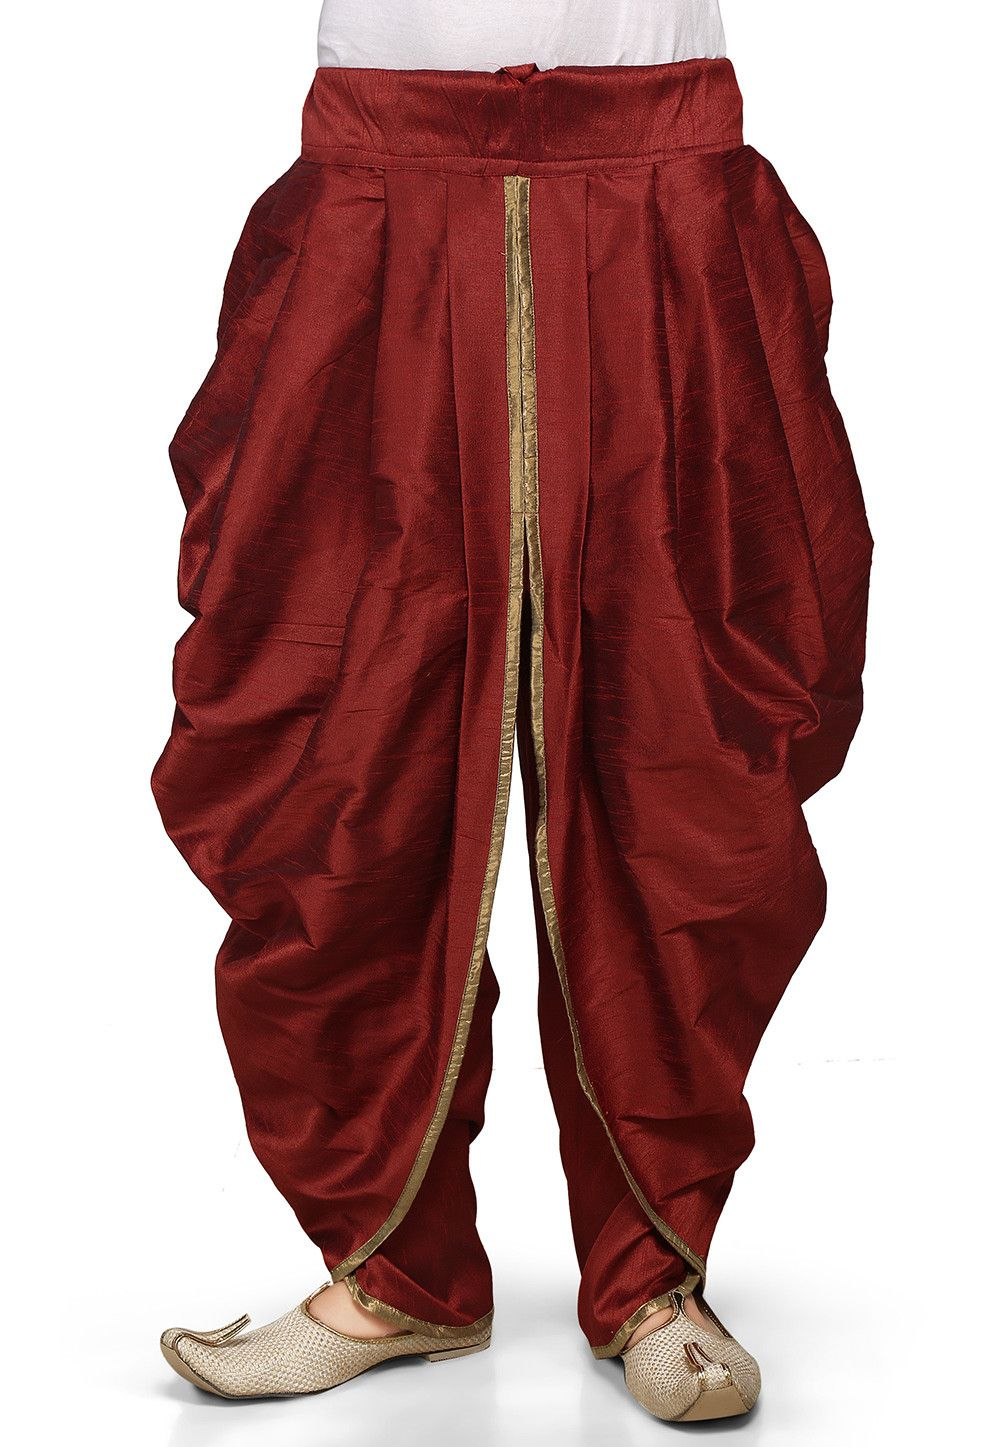 Art dupion silk readymade dhoti in maroon 族 pinterest